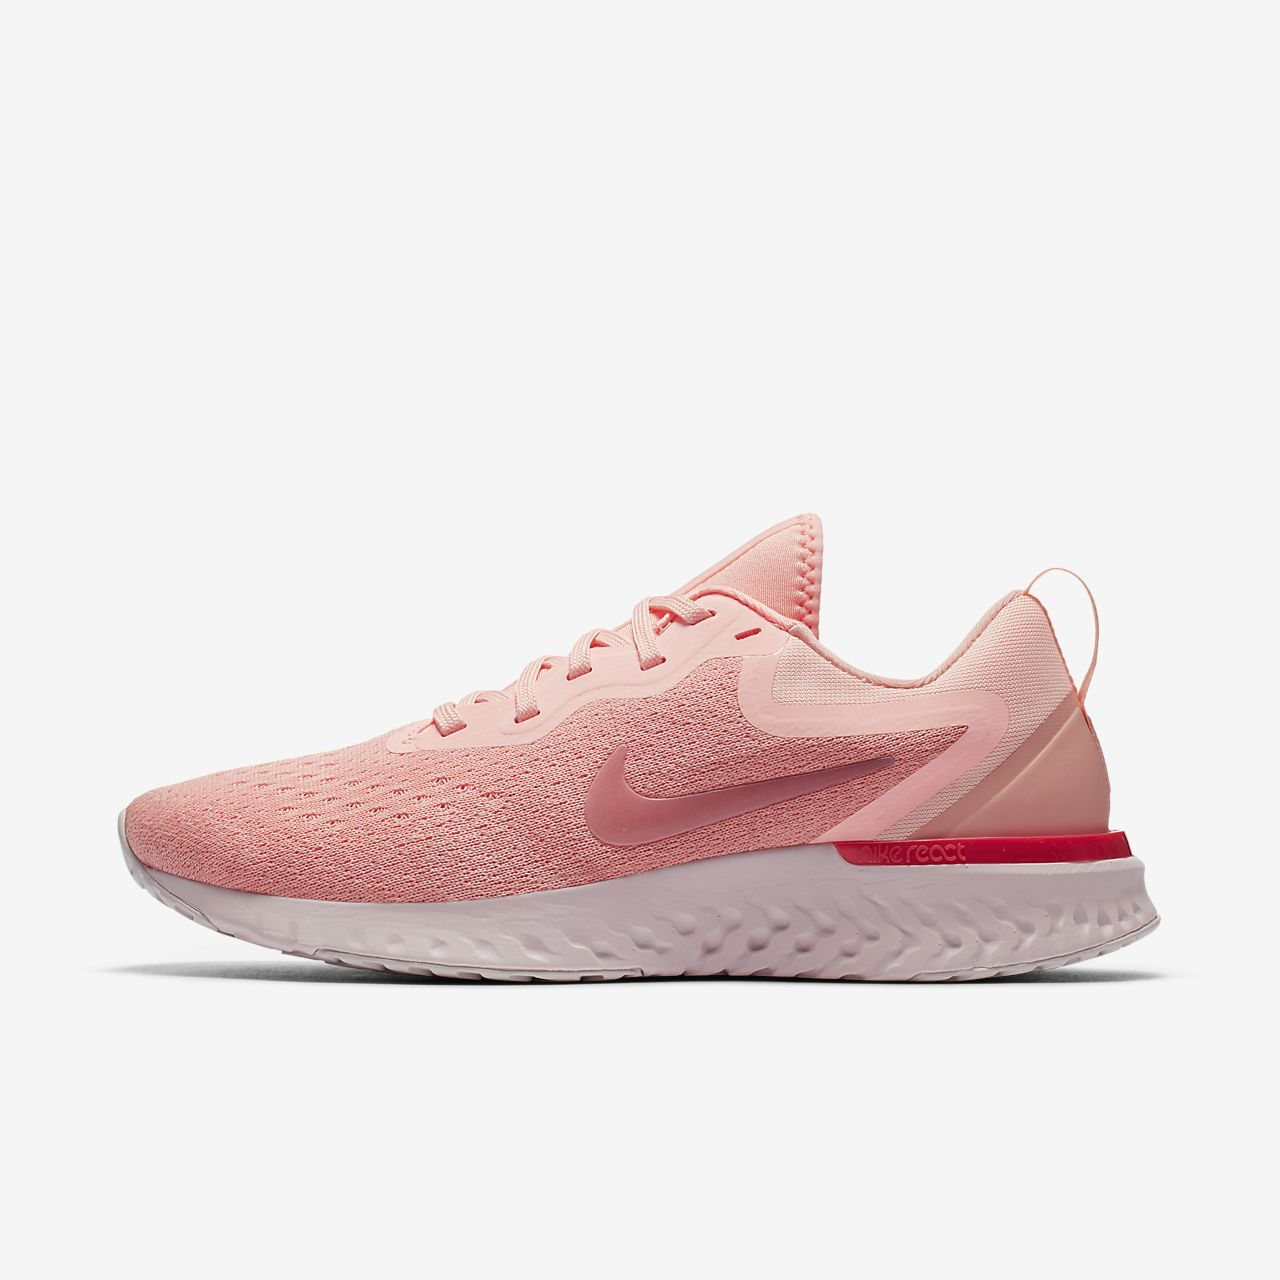 88da41391b5a4 Nike Odyssey React - Oracle Pink Coral Stardust Tropical Pink Pink Tint